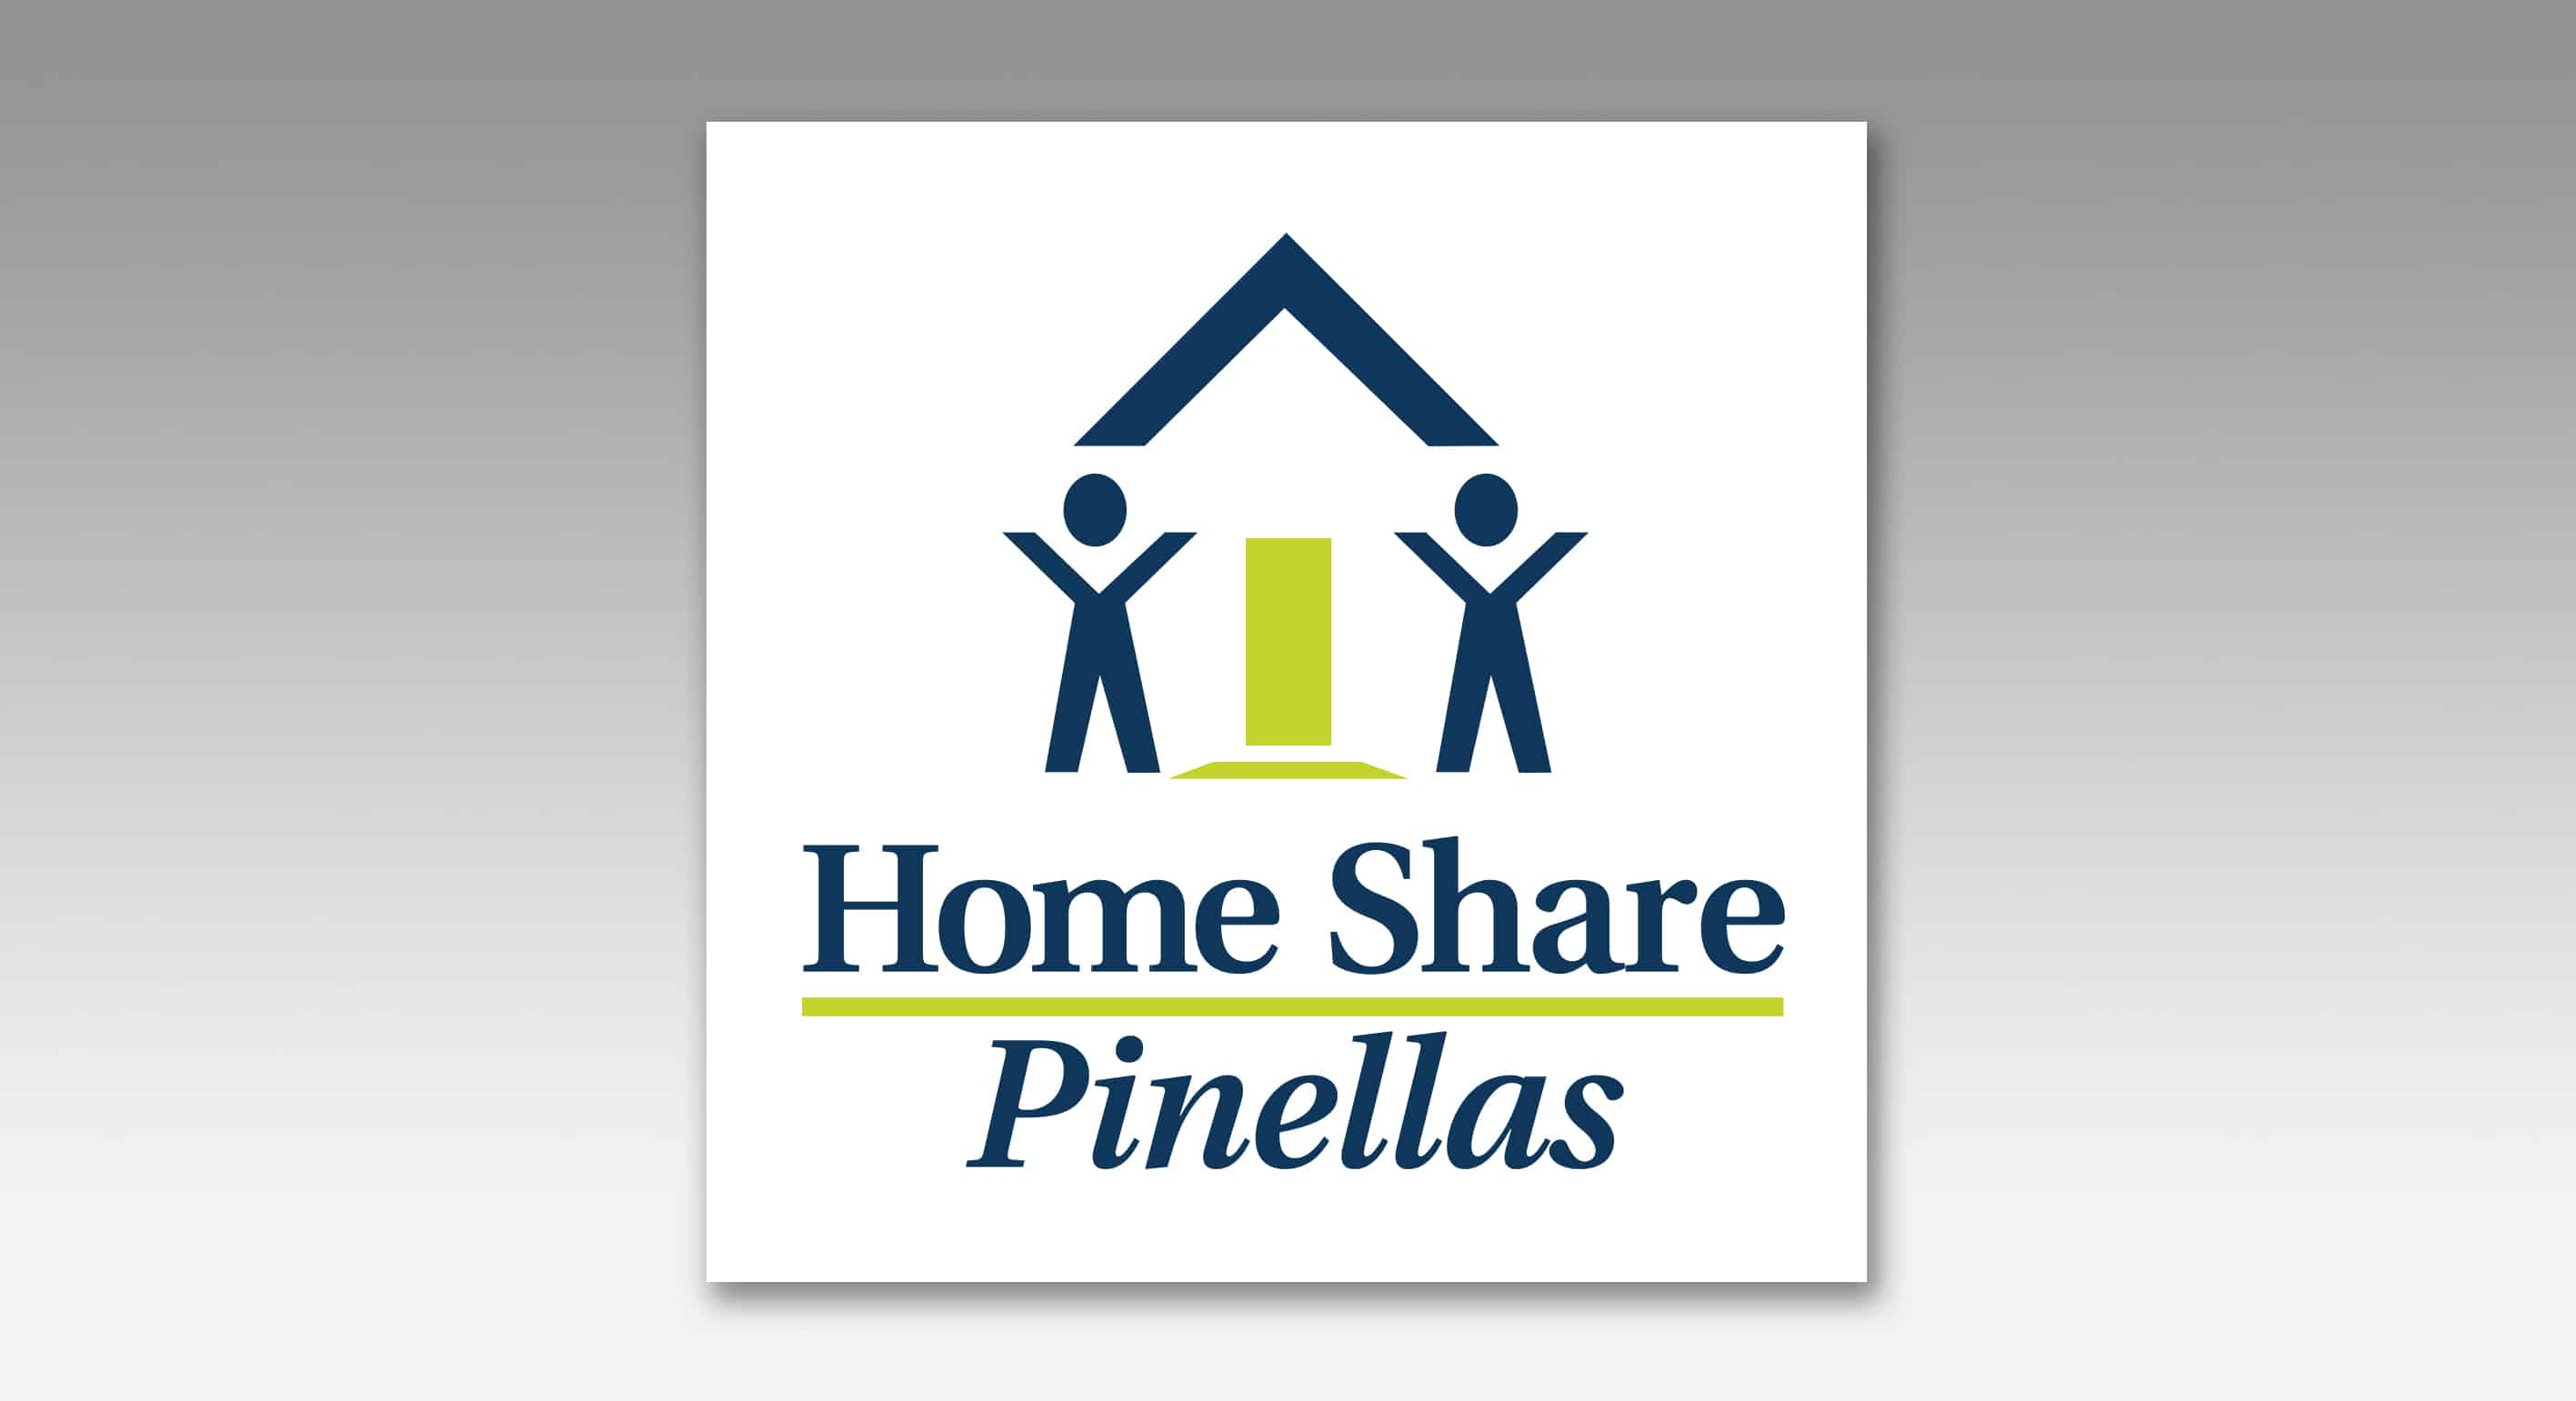 Home Share Pinellas